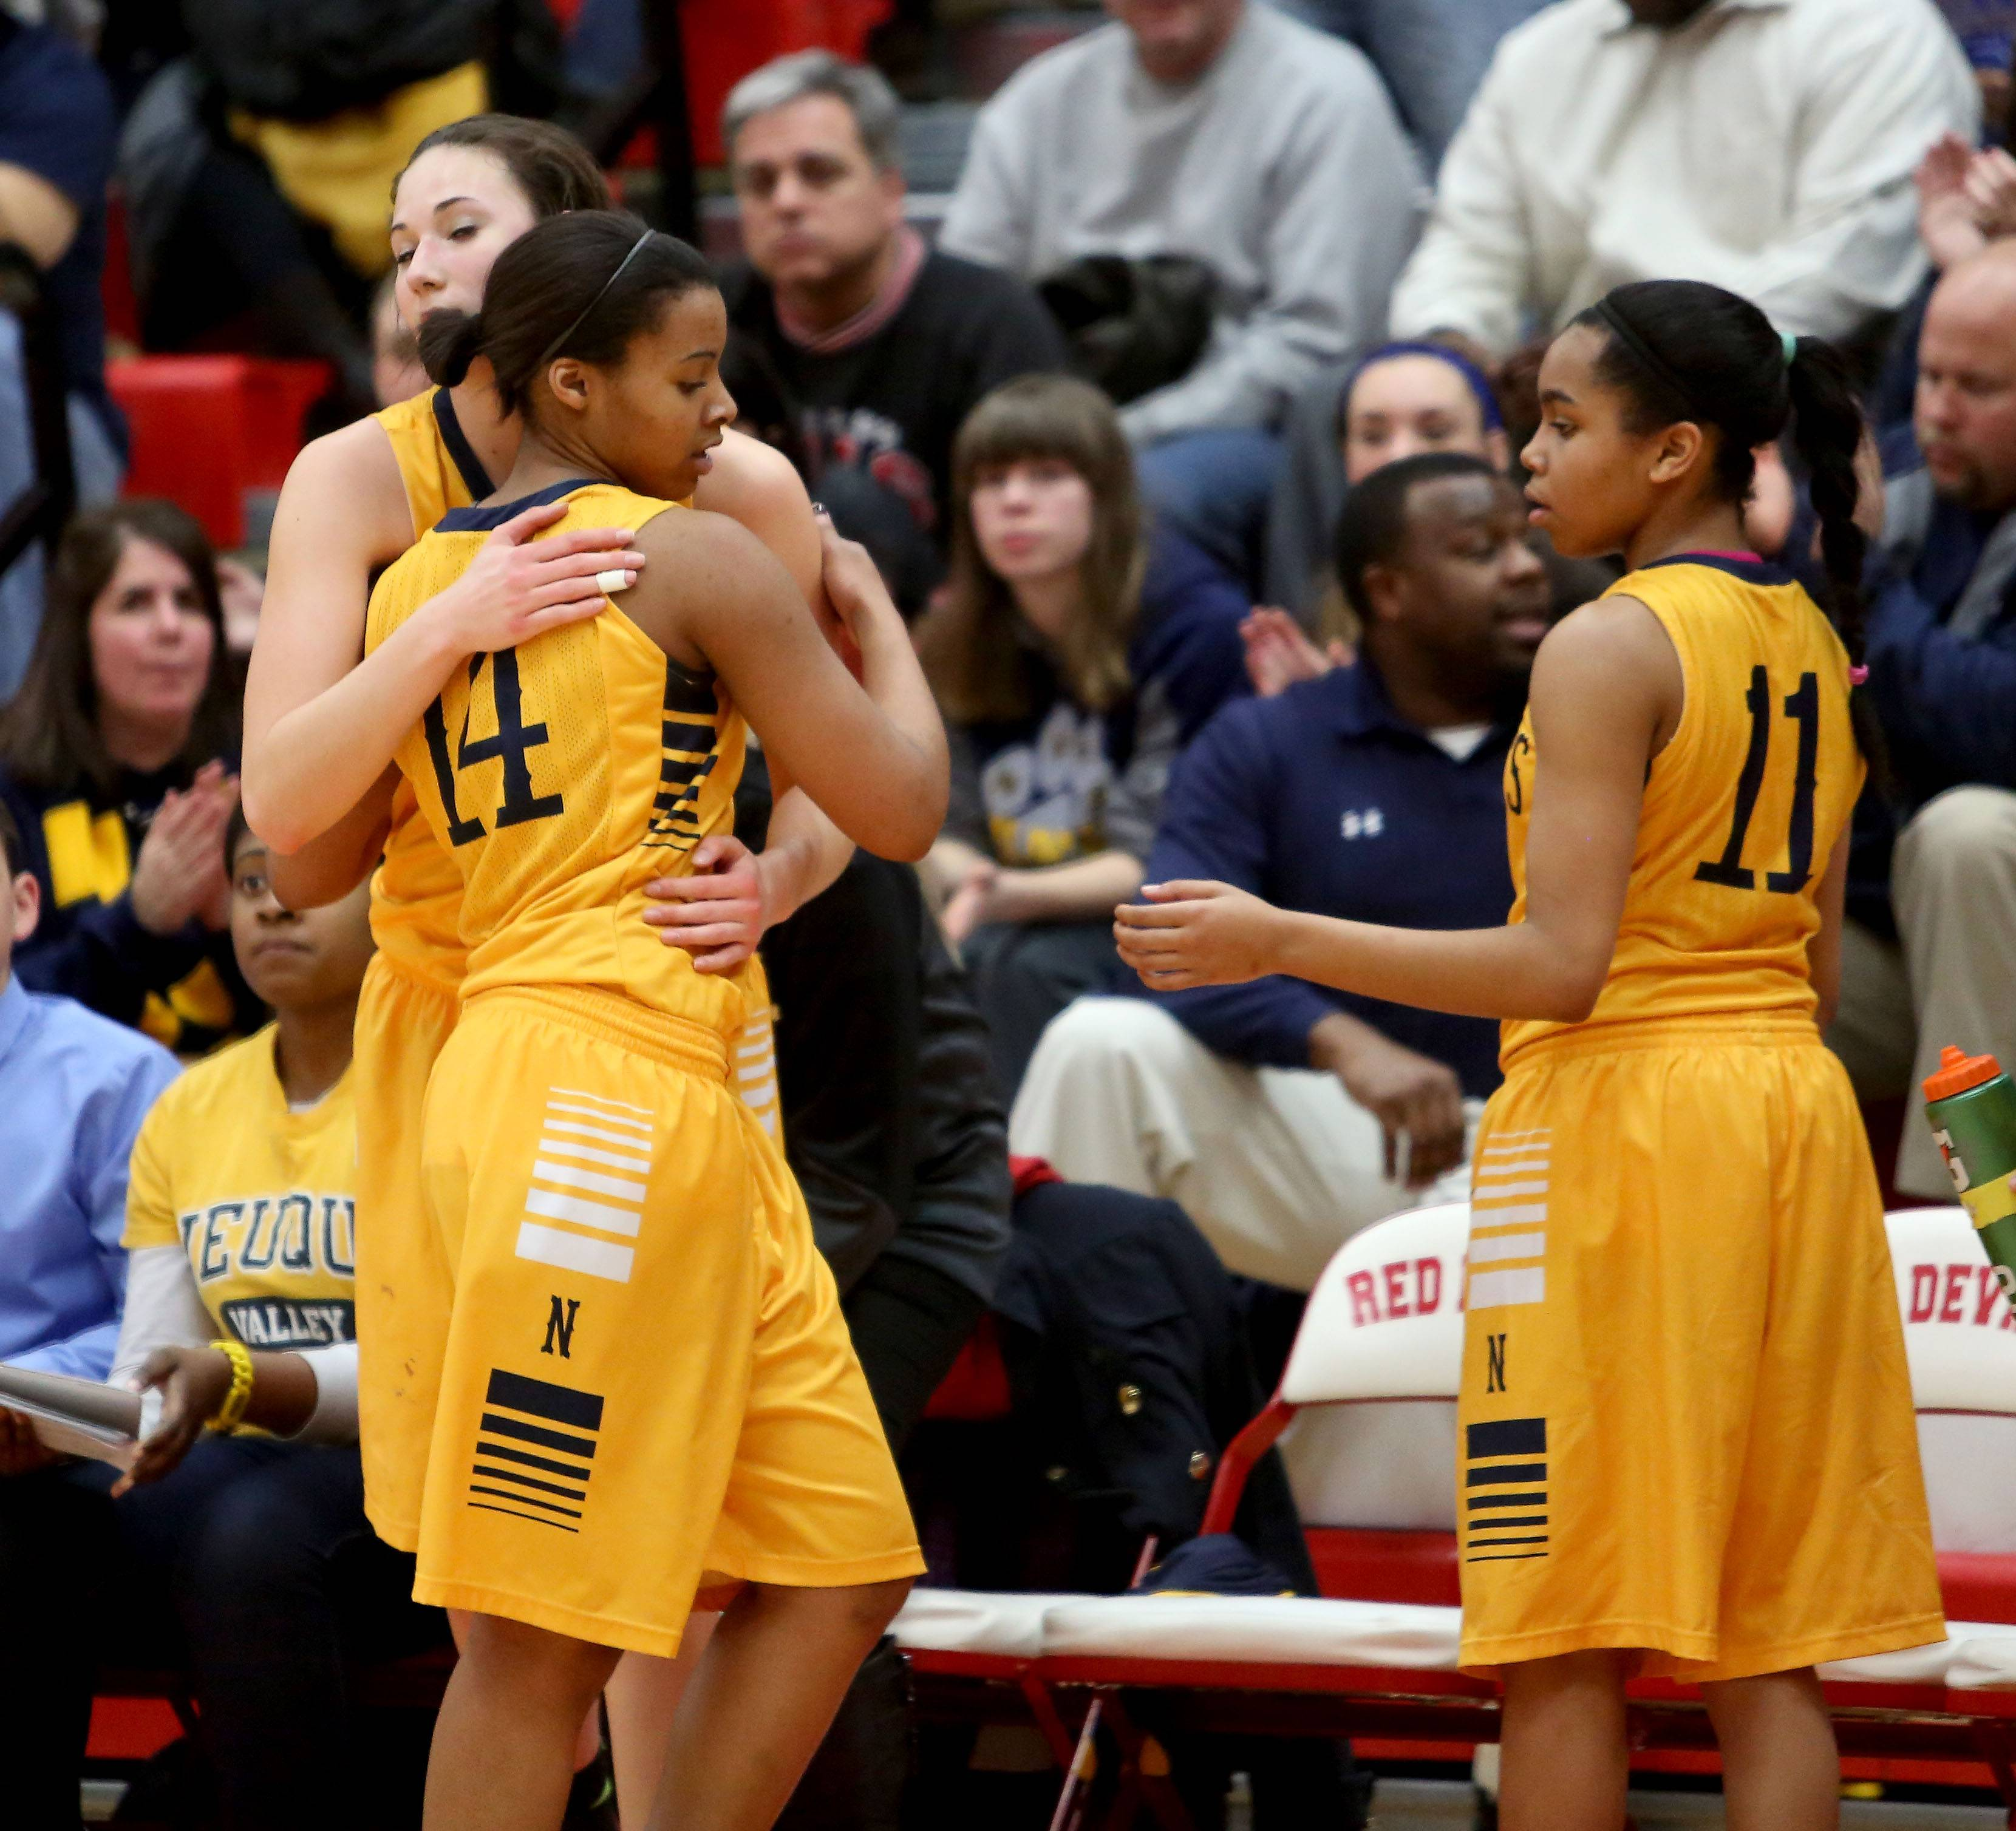 Neuqua Valley's Najee Smith, left, gets a hug from teammates as she comes off the floor during their loss to Whitney Young in Class 4A supersectional girls basketball at Hinsdale Central on Monday.